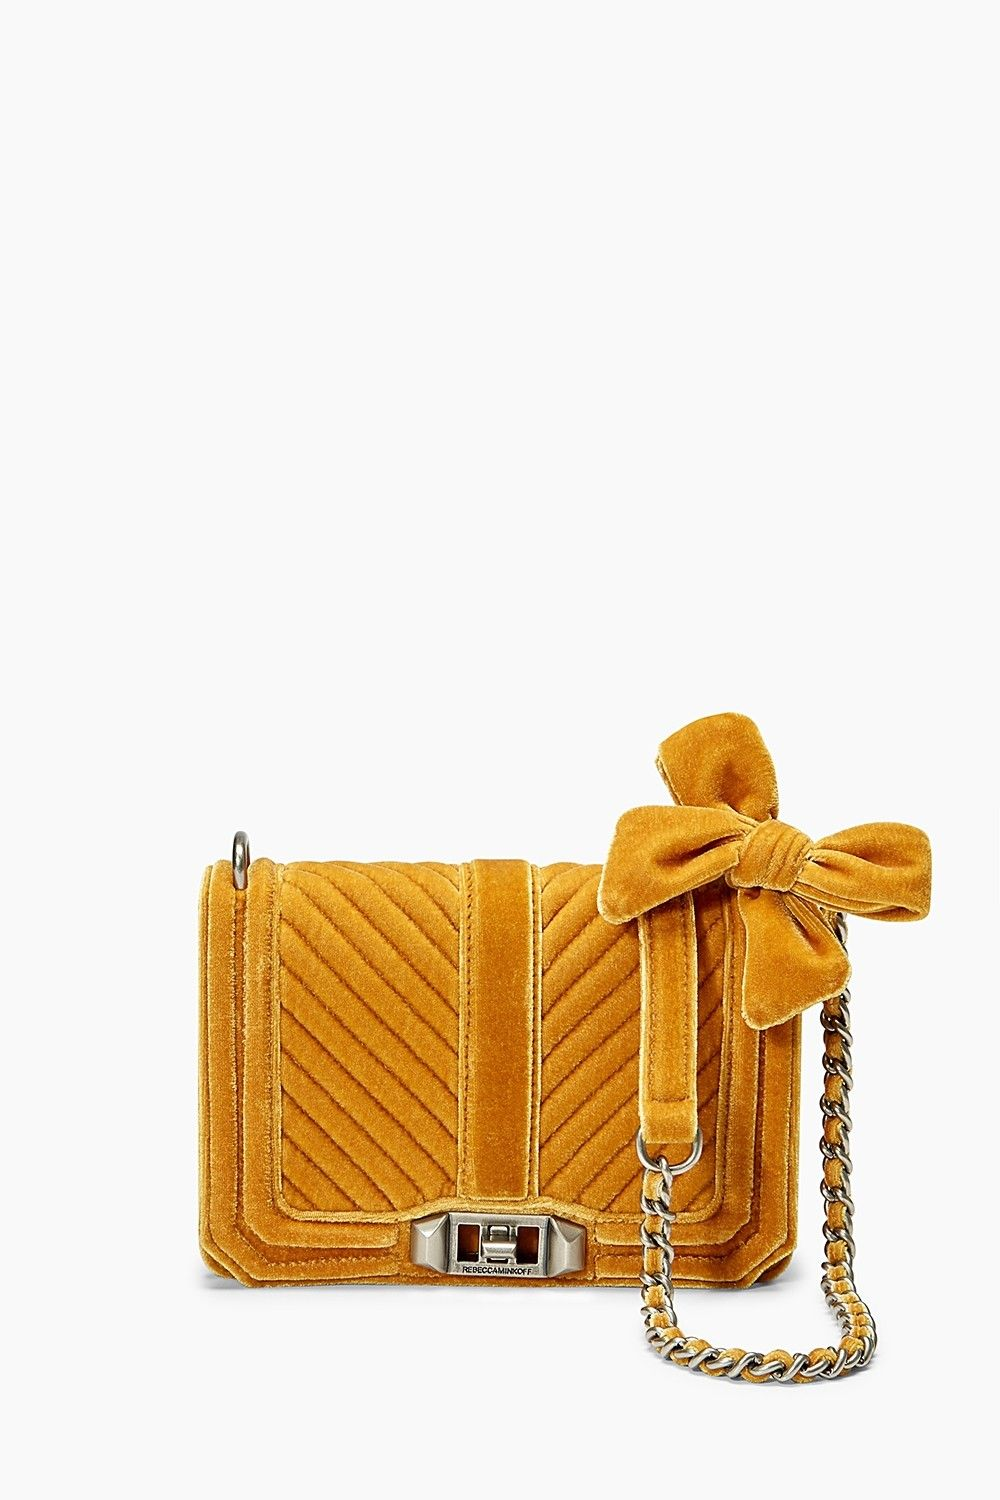 Velvet Chevron Quilted Small Love Crossbody  - Style #: XH17FVLX45